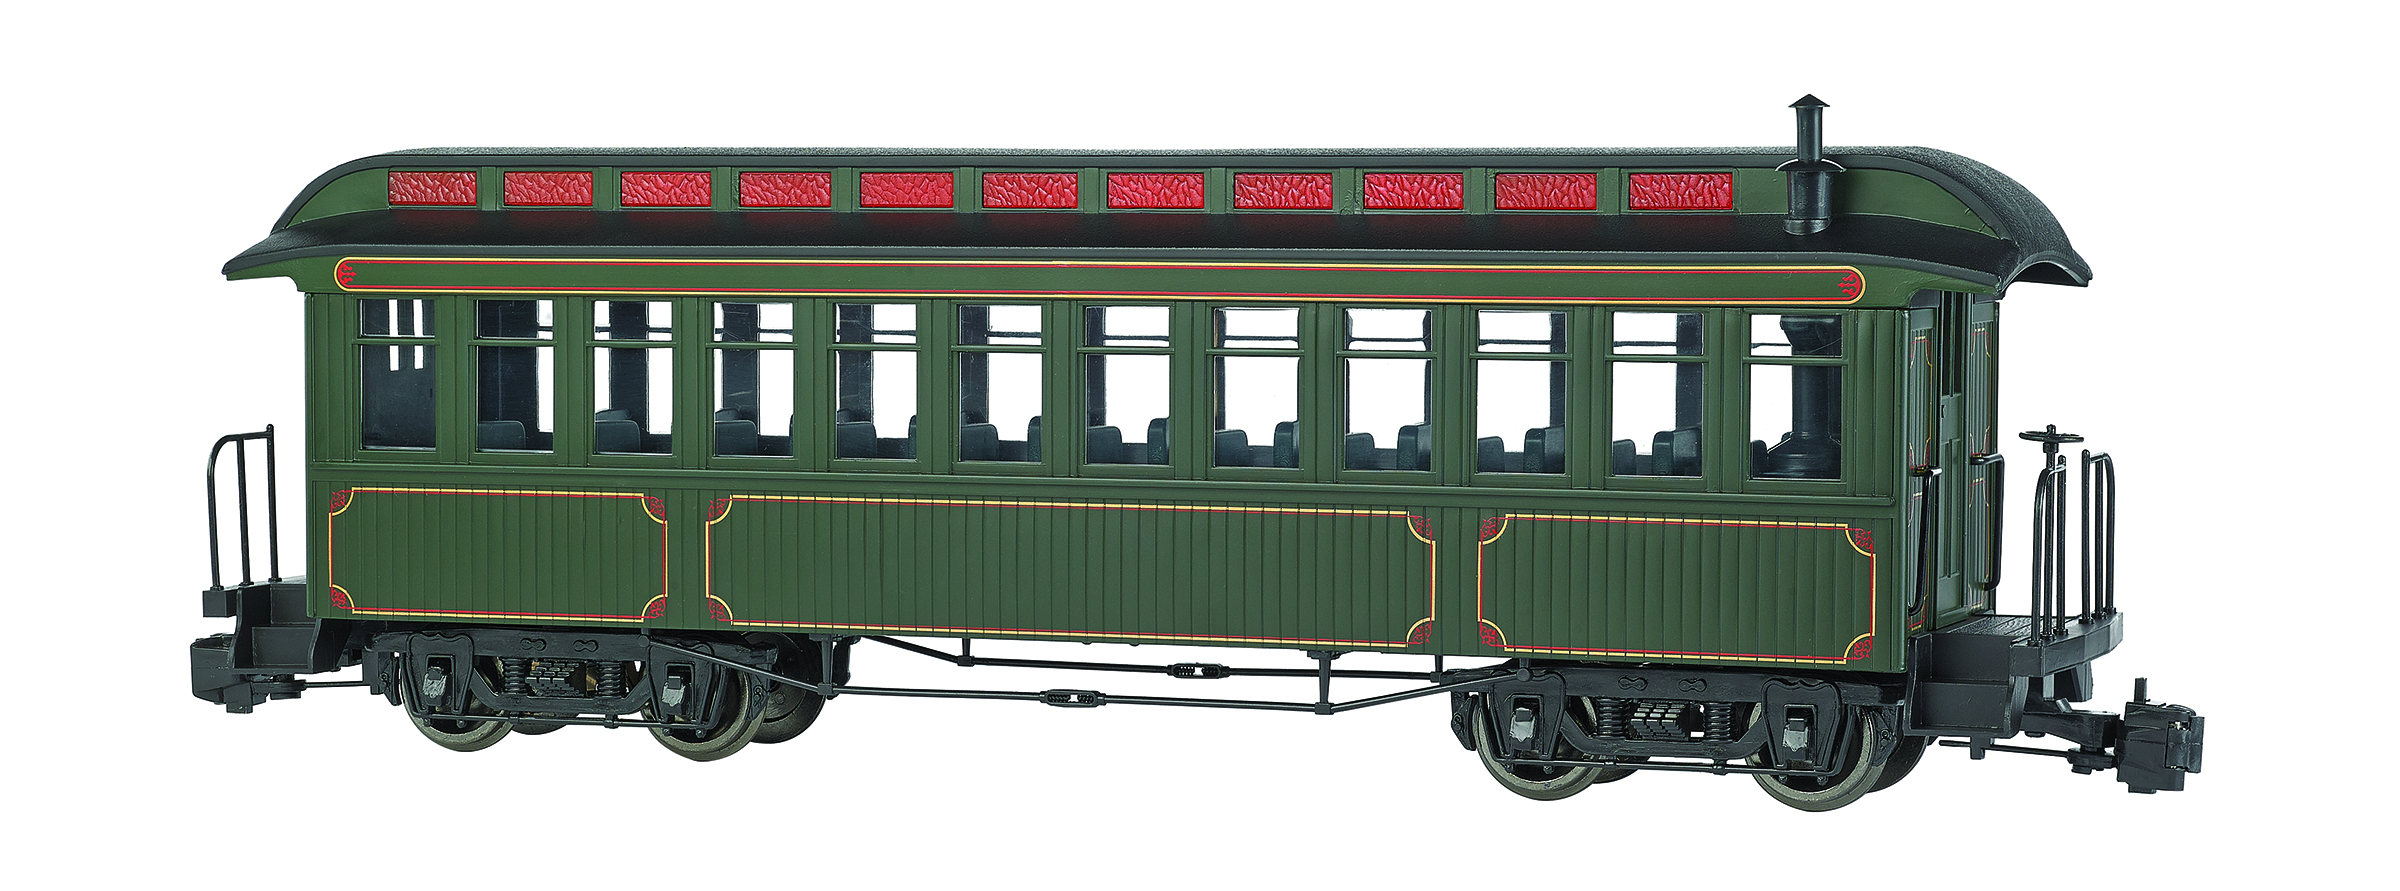 Coach - Painted Unlettered - Olive With Gold Lining (G Scale)